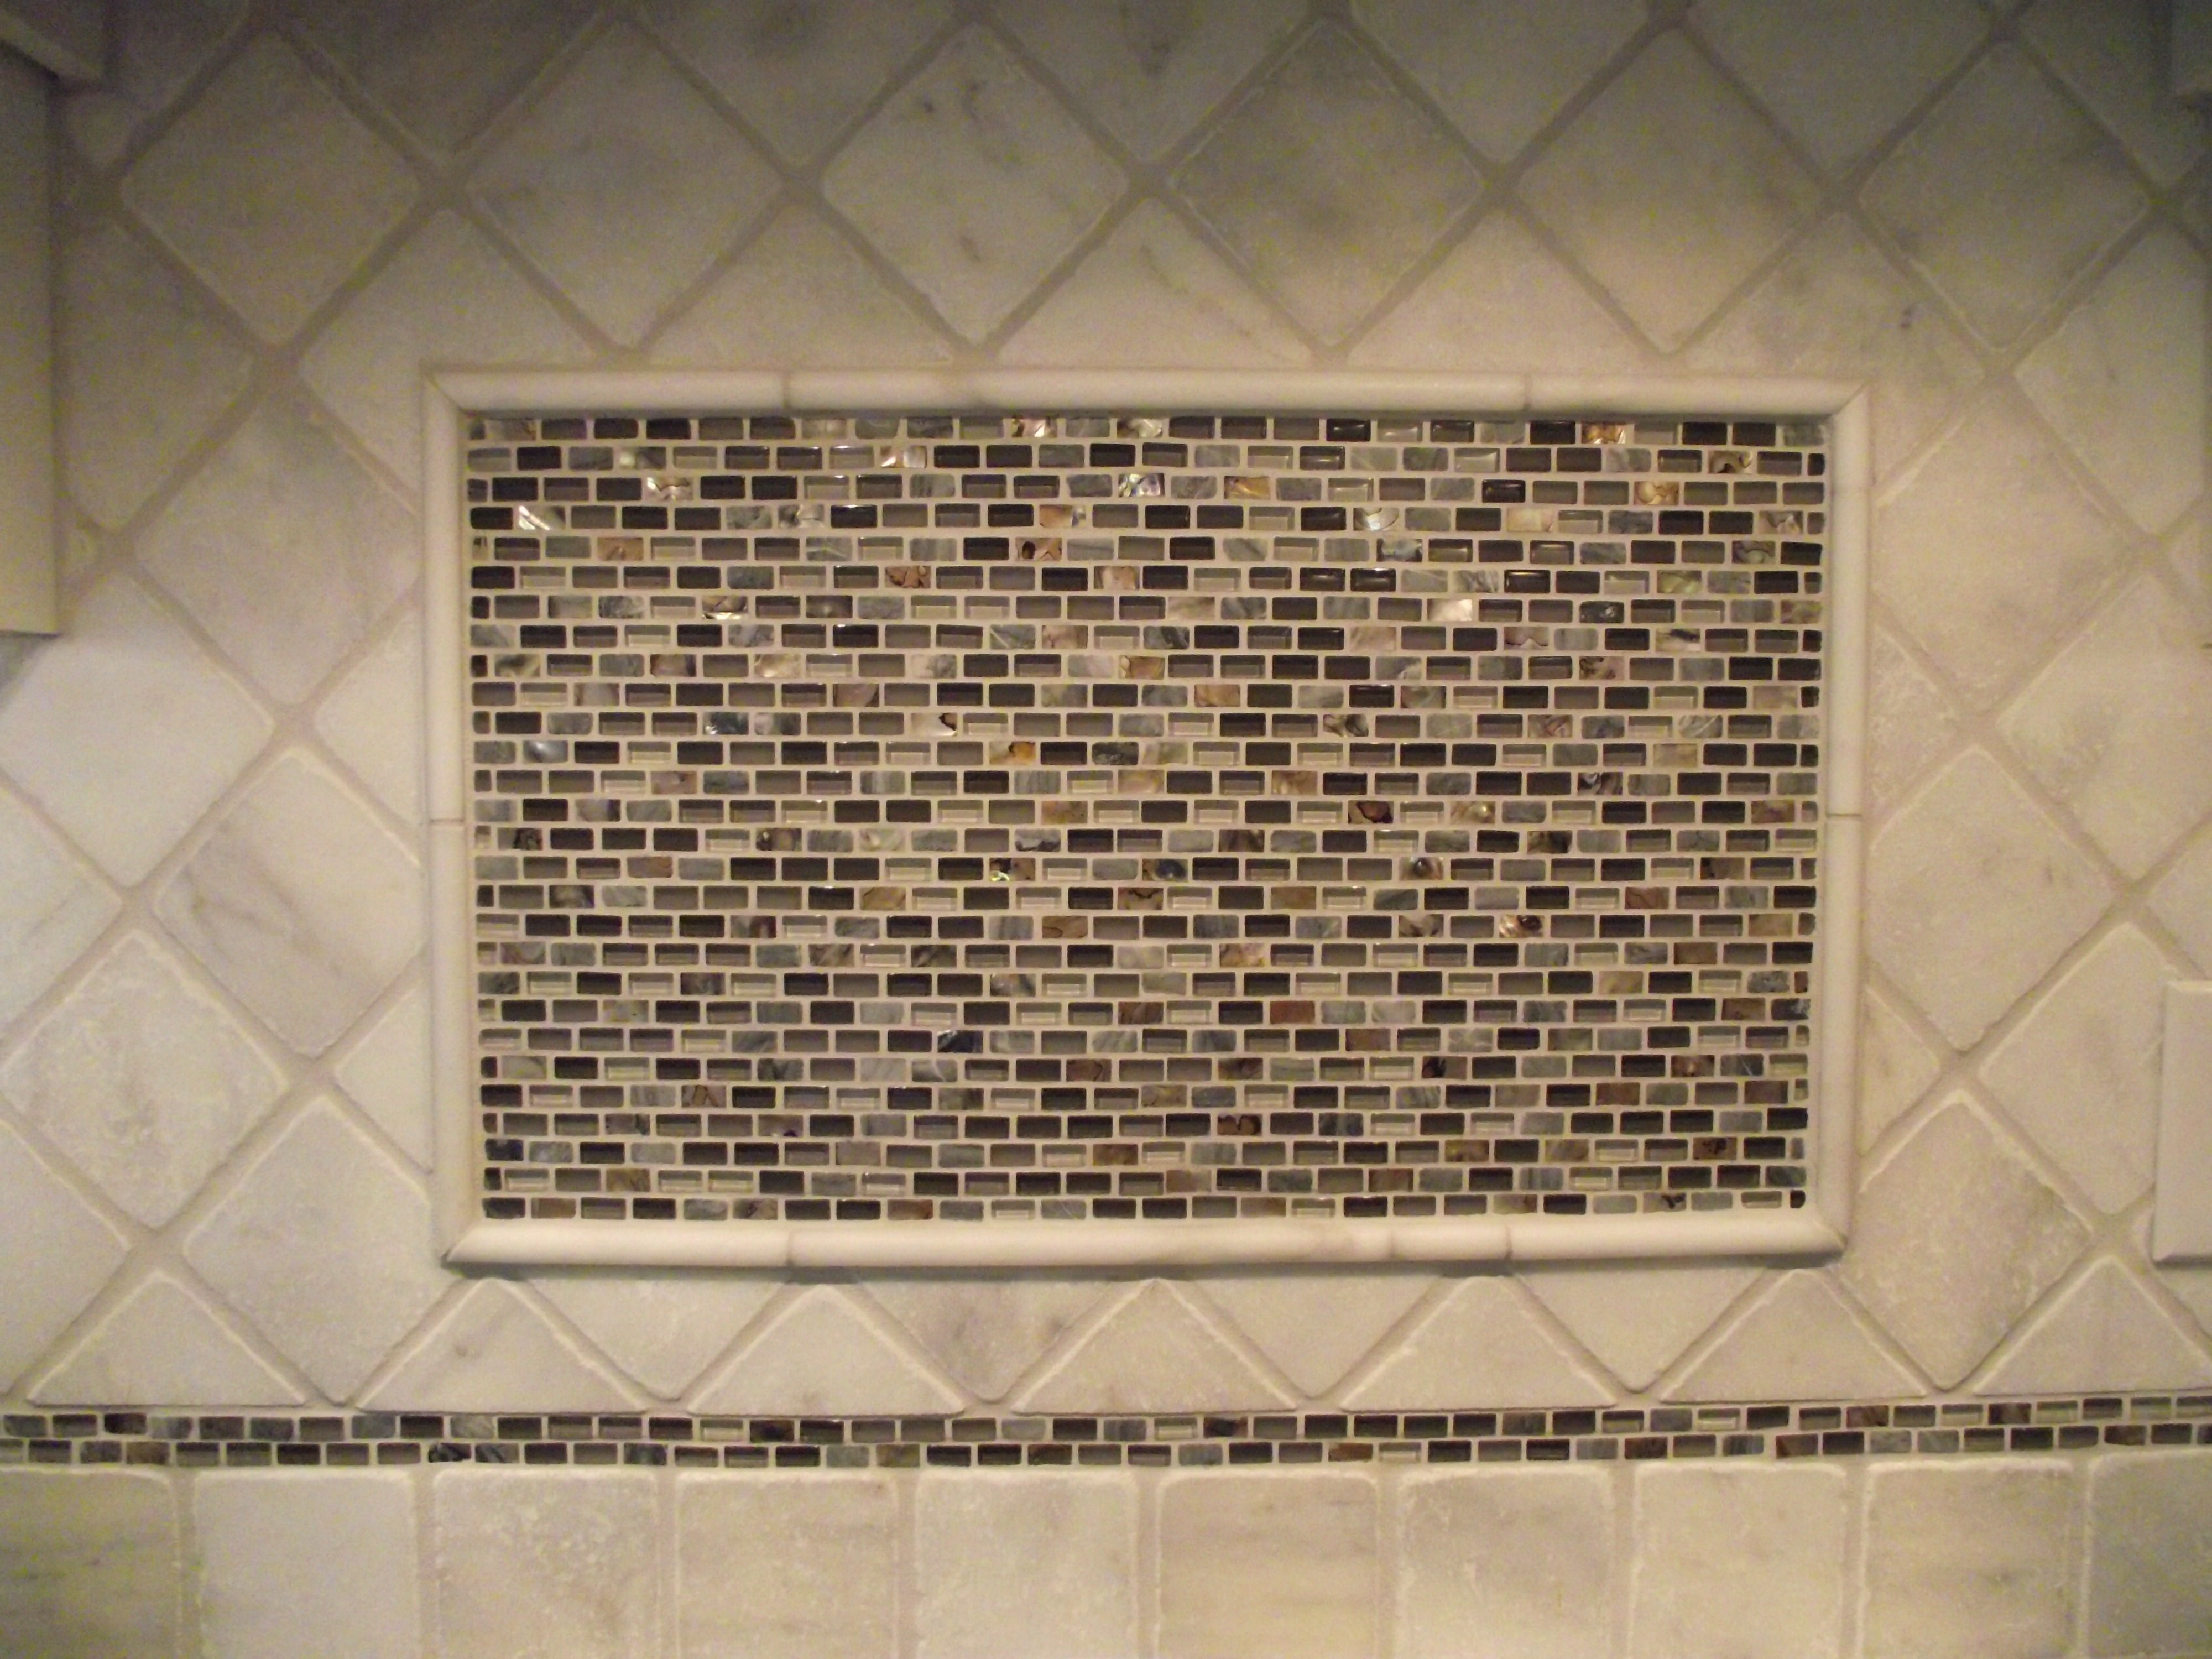 Backsplash Imperial 4x4 White Tumbled Stone With Madreperla Grigio Mosaic Tiles Ceramic Floor Tiles Blue Pearl Granite Mosaic Tiles